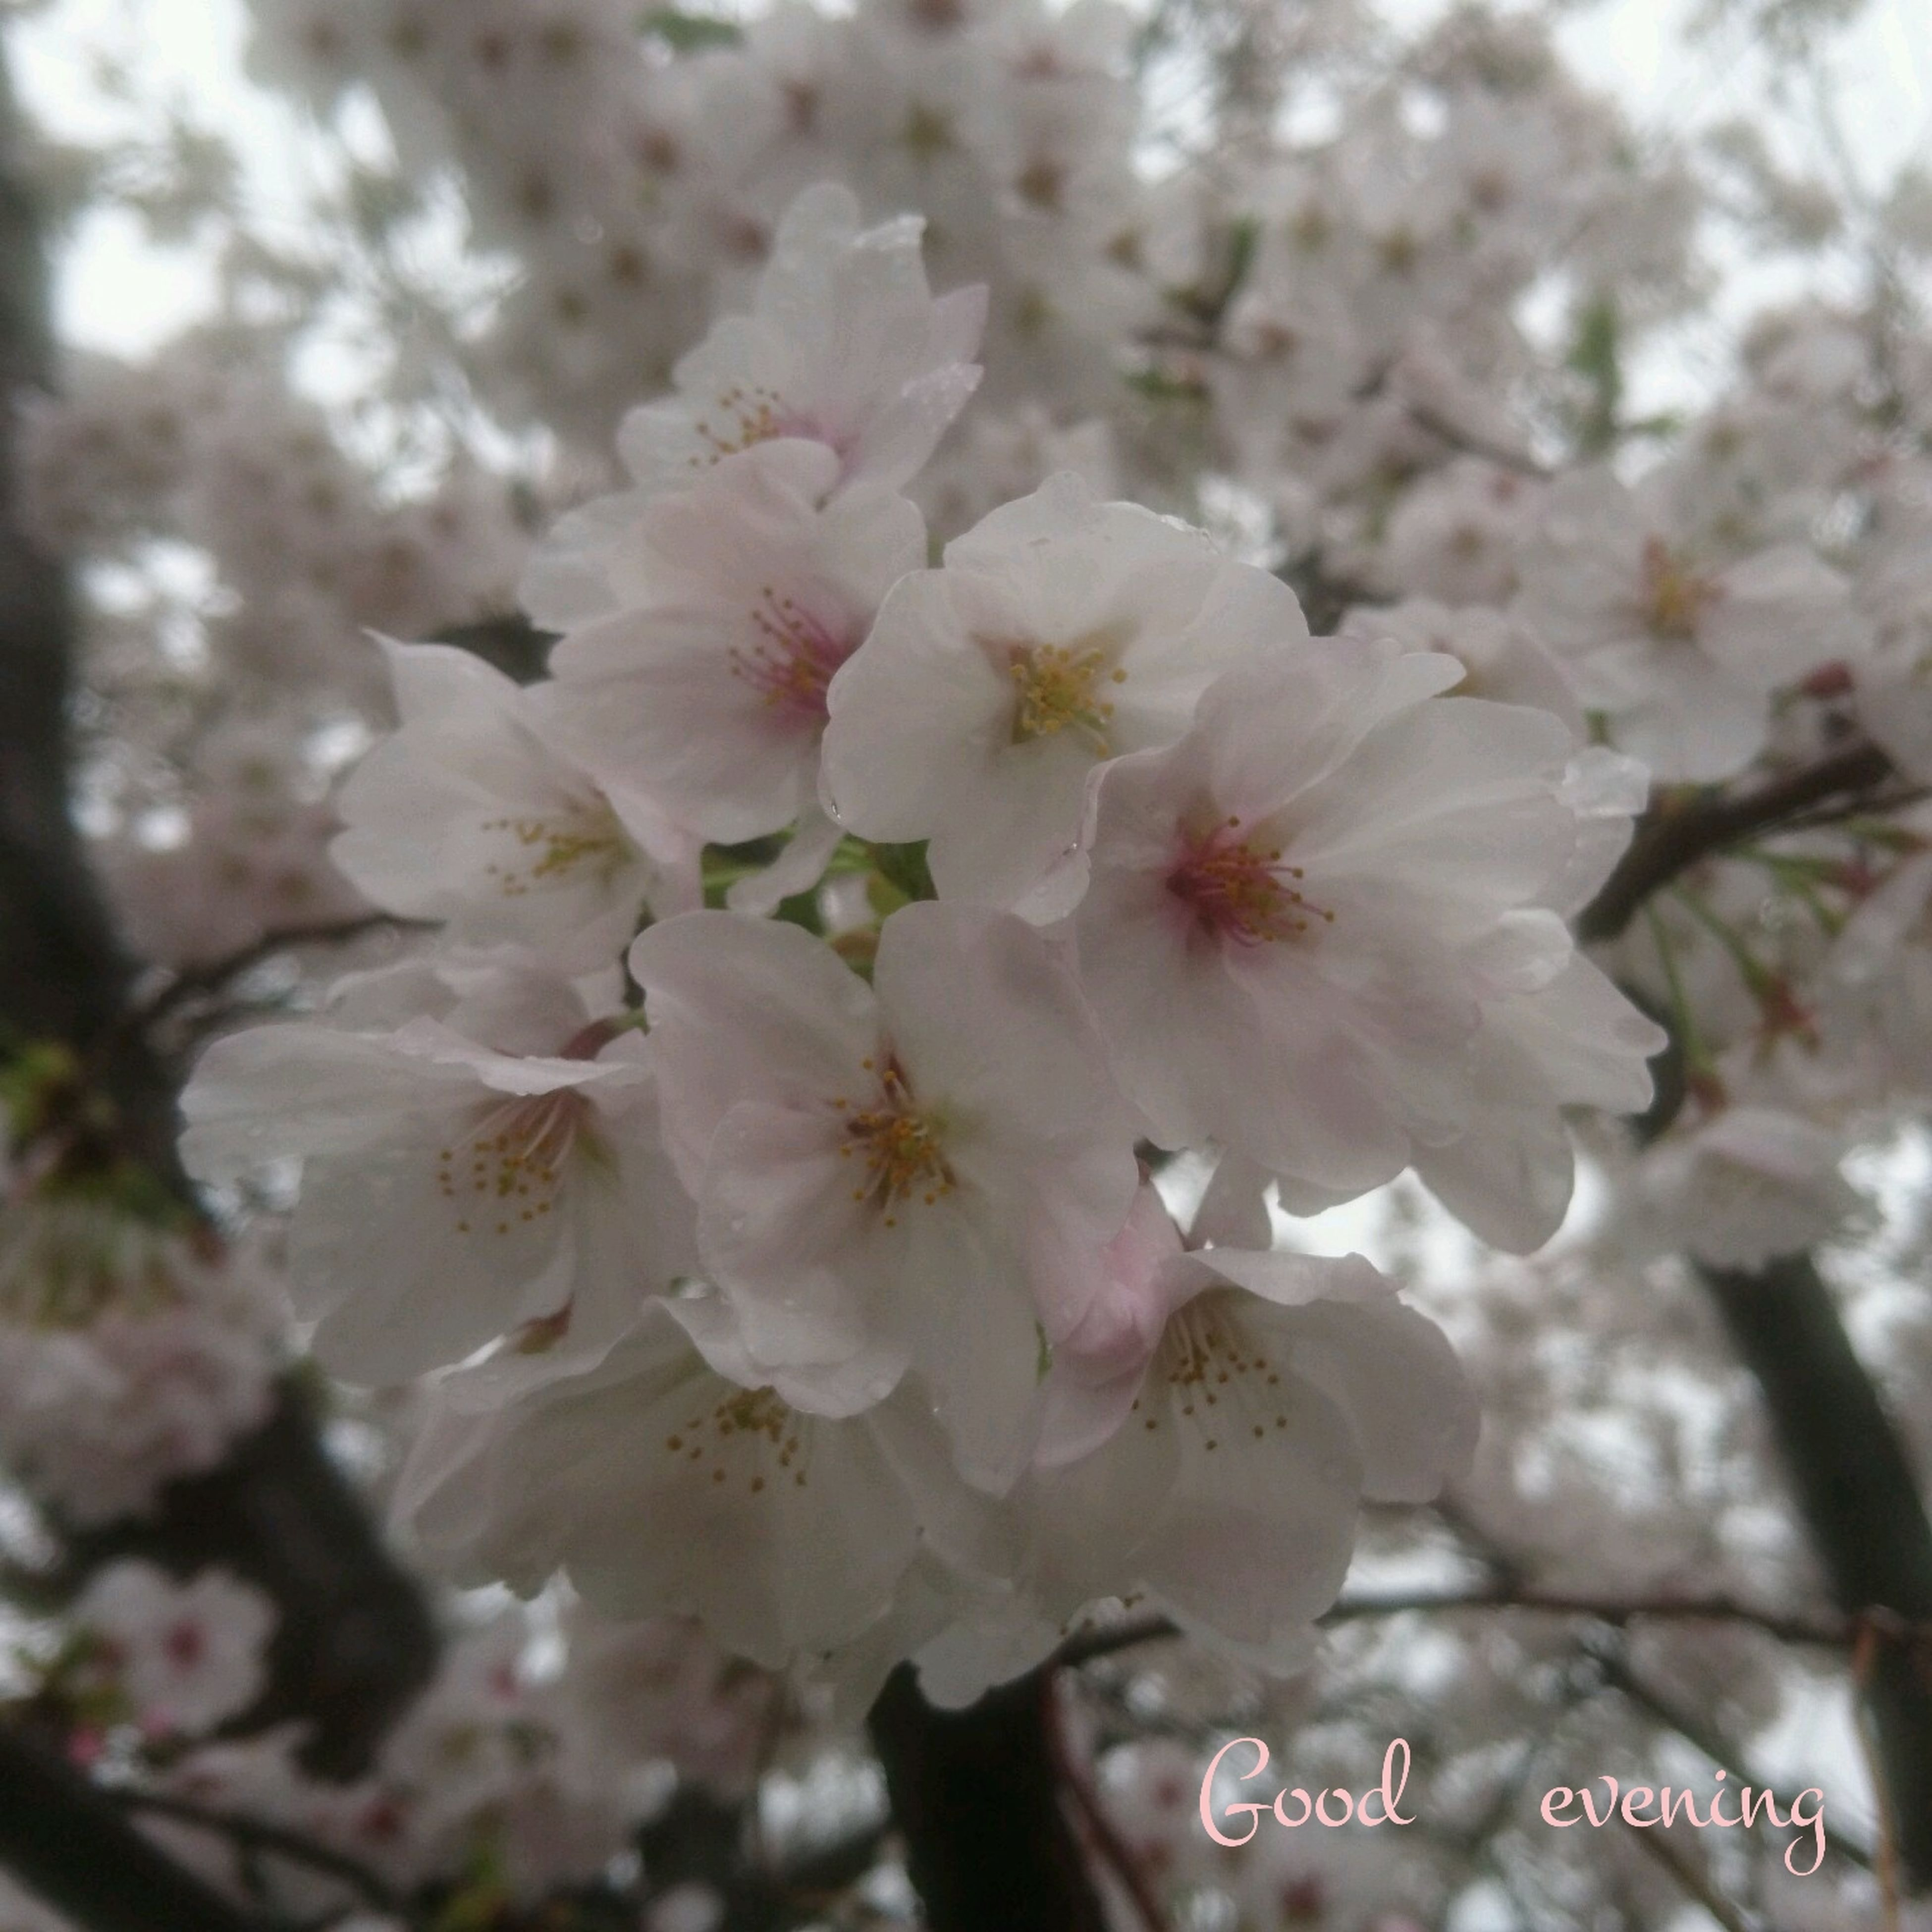 flower, growth, nature, fragility, tree, beauty in nature, close-up, springtime, blossom, freshness, no people, outdoors, day, flower head, plum blossom